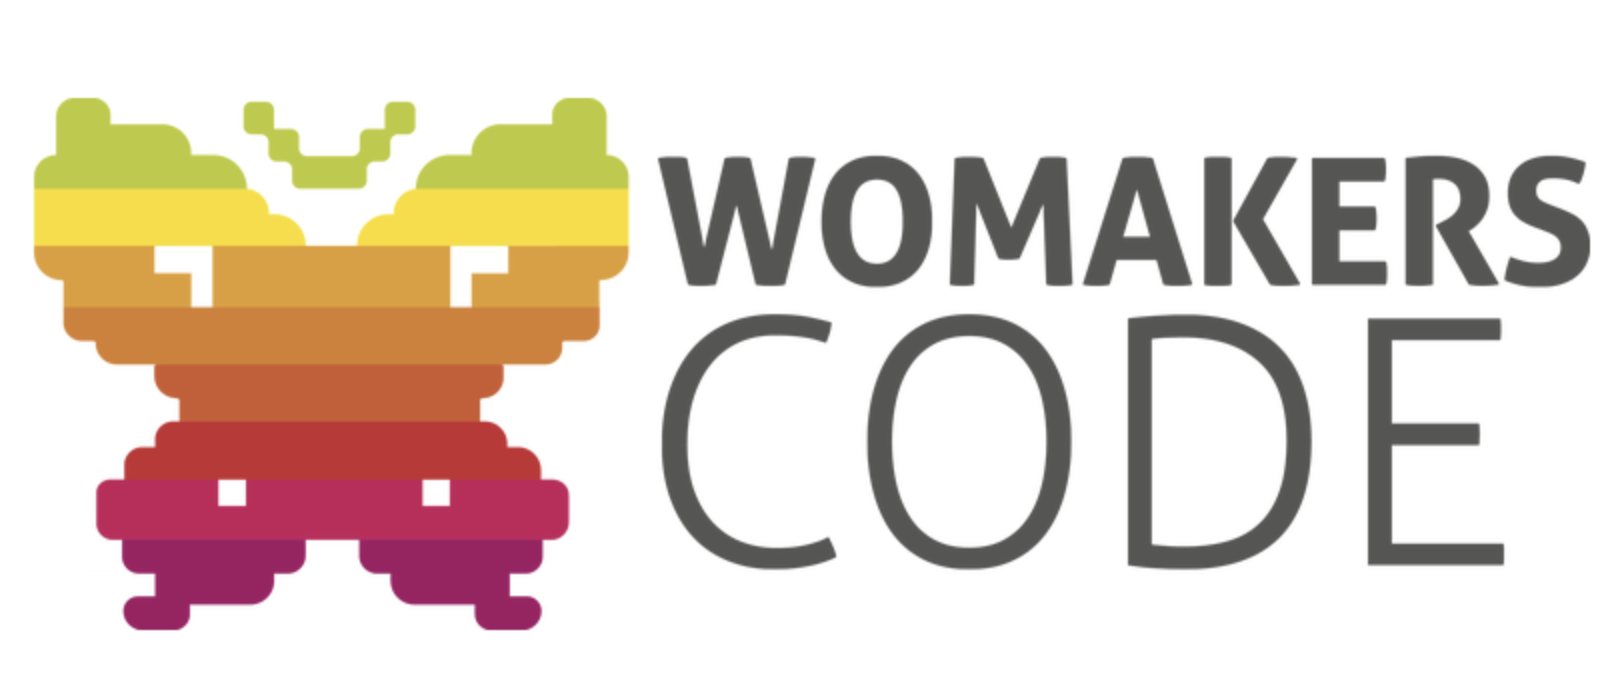 logo womakescode